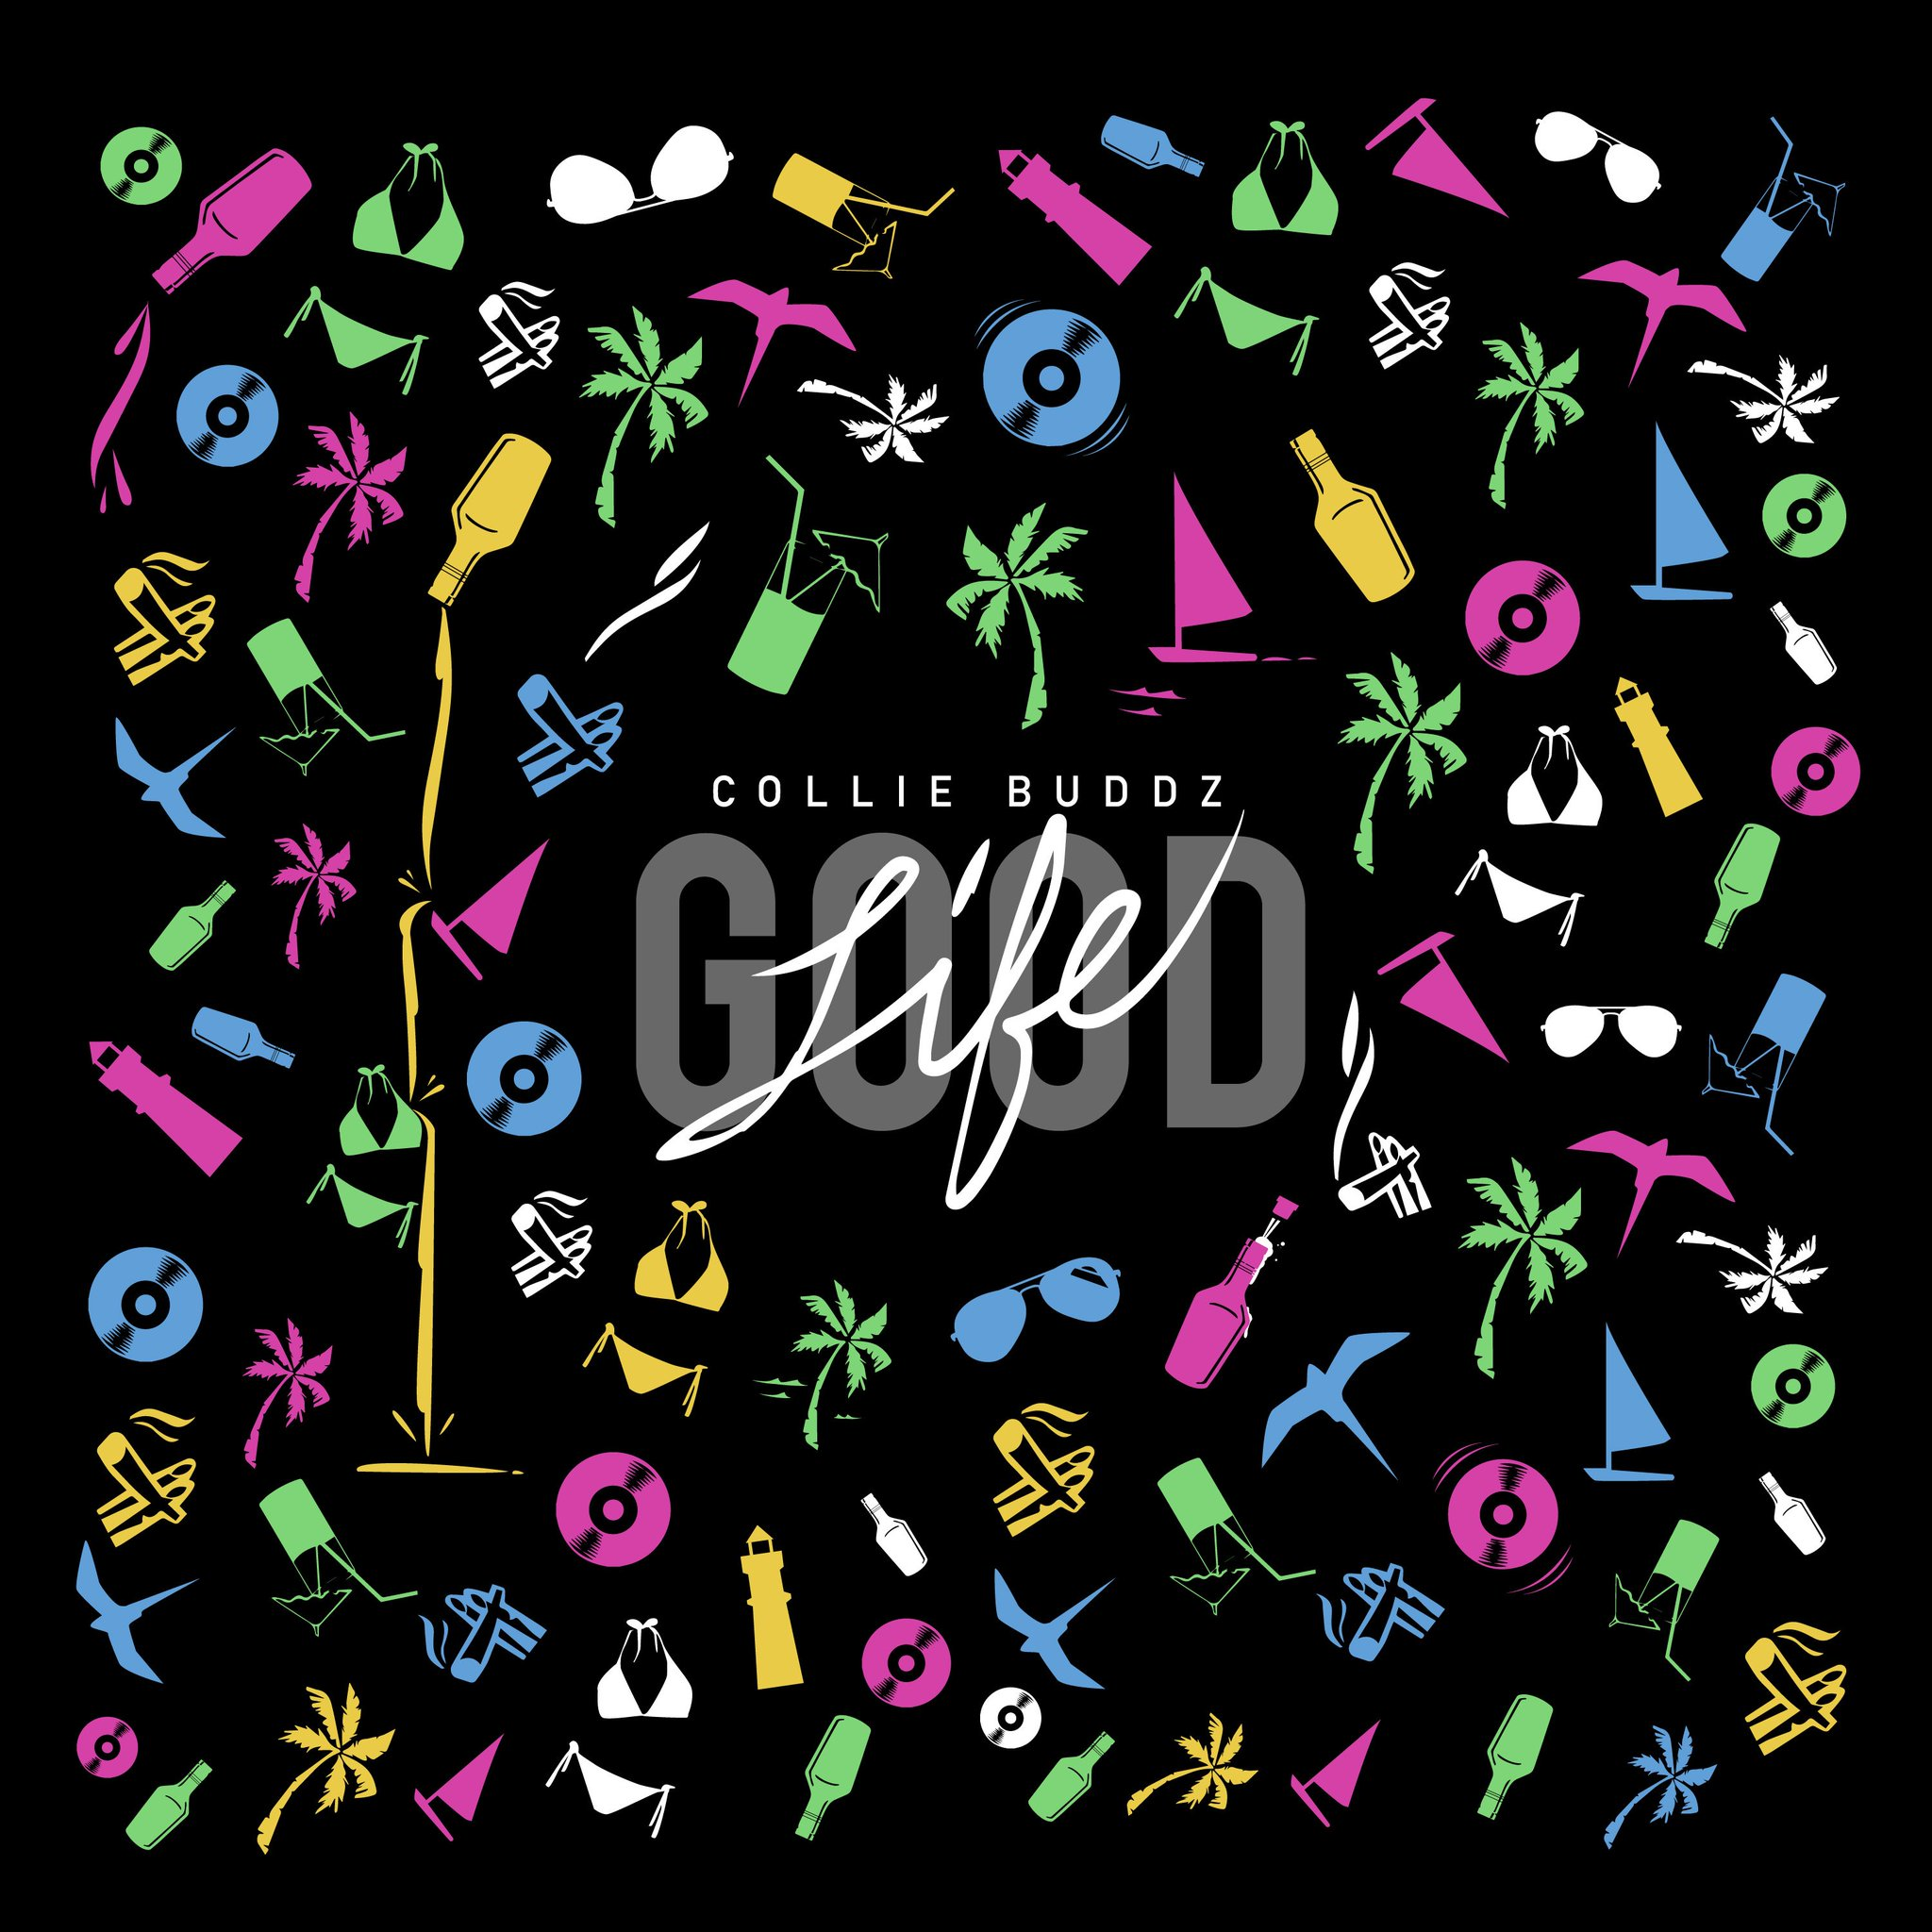 Premiere: @CollieBuddz catches us up with his first album in 10 years, Good Life. https://t.co/4hecCEl9QW https://t.co/yjsiKEiDnv